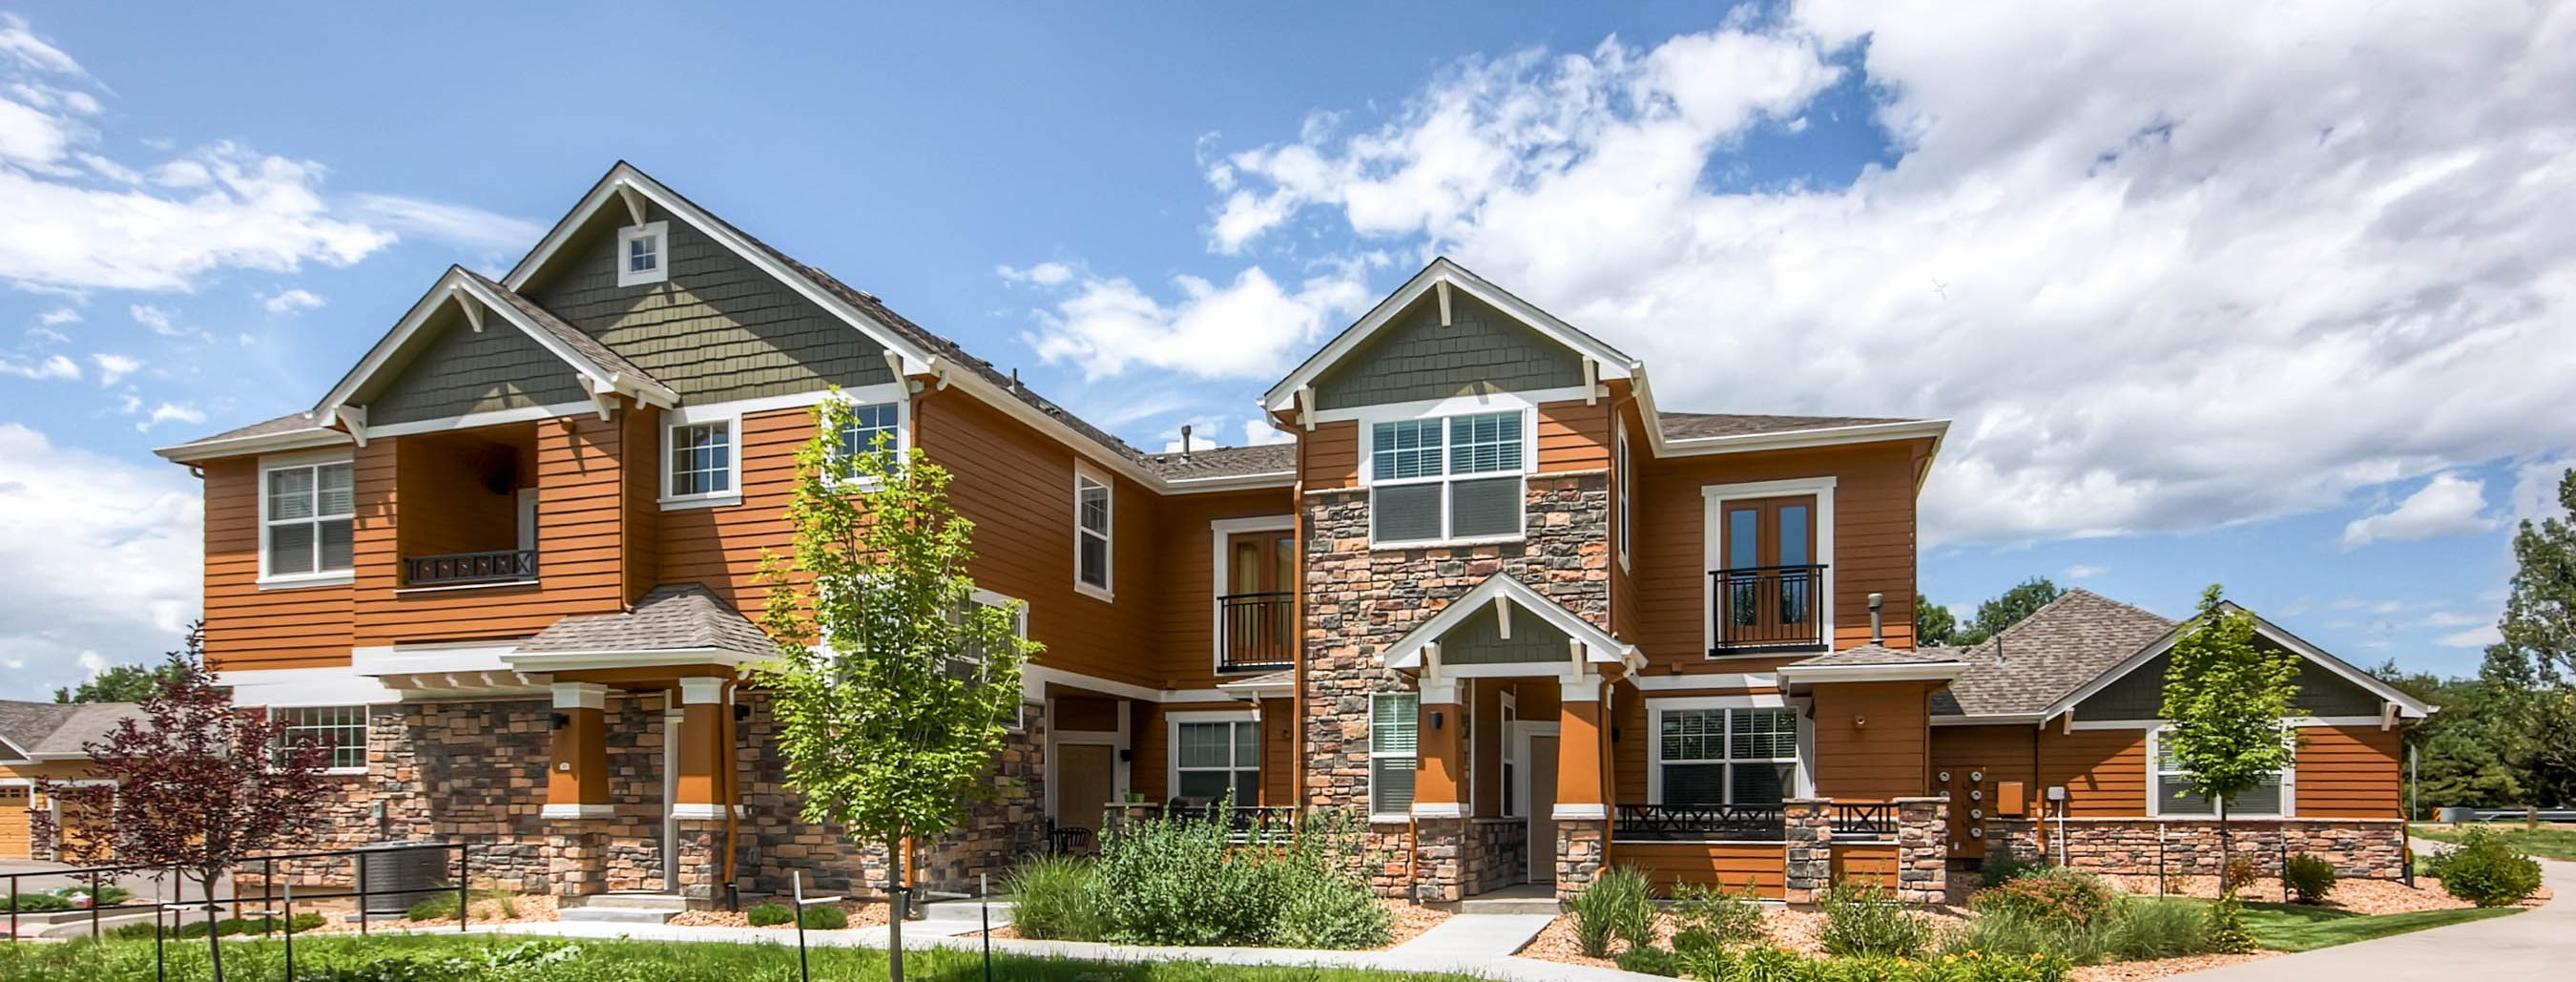 Exterior at Maple Leaf Apartments in Arvada, CO